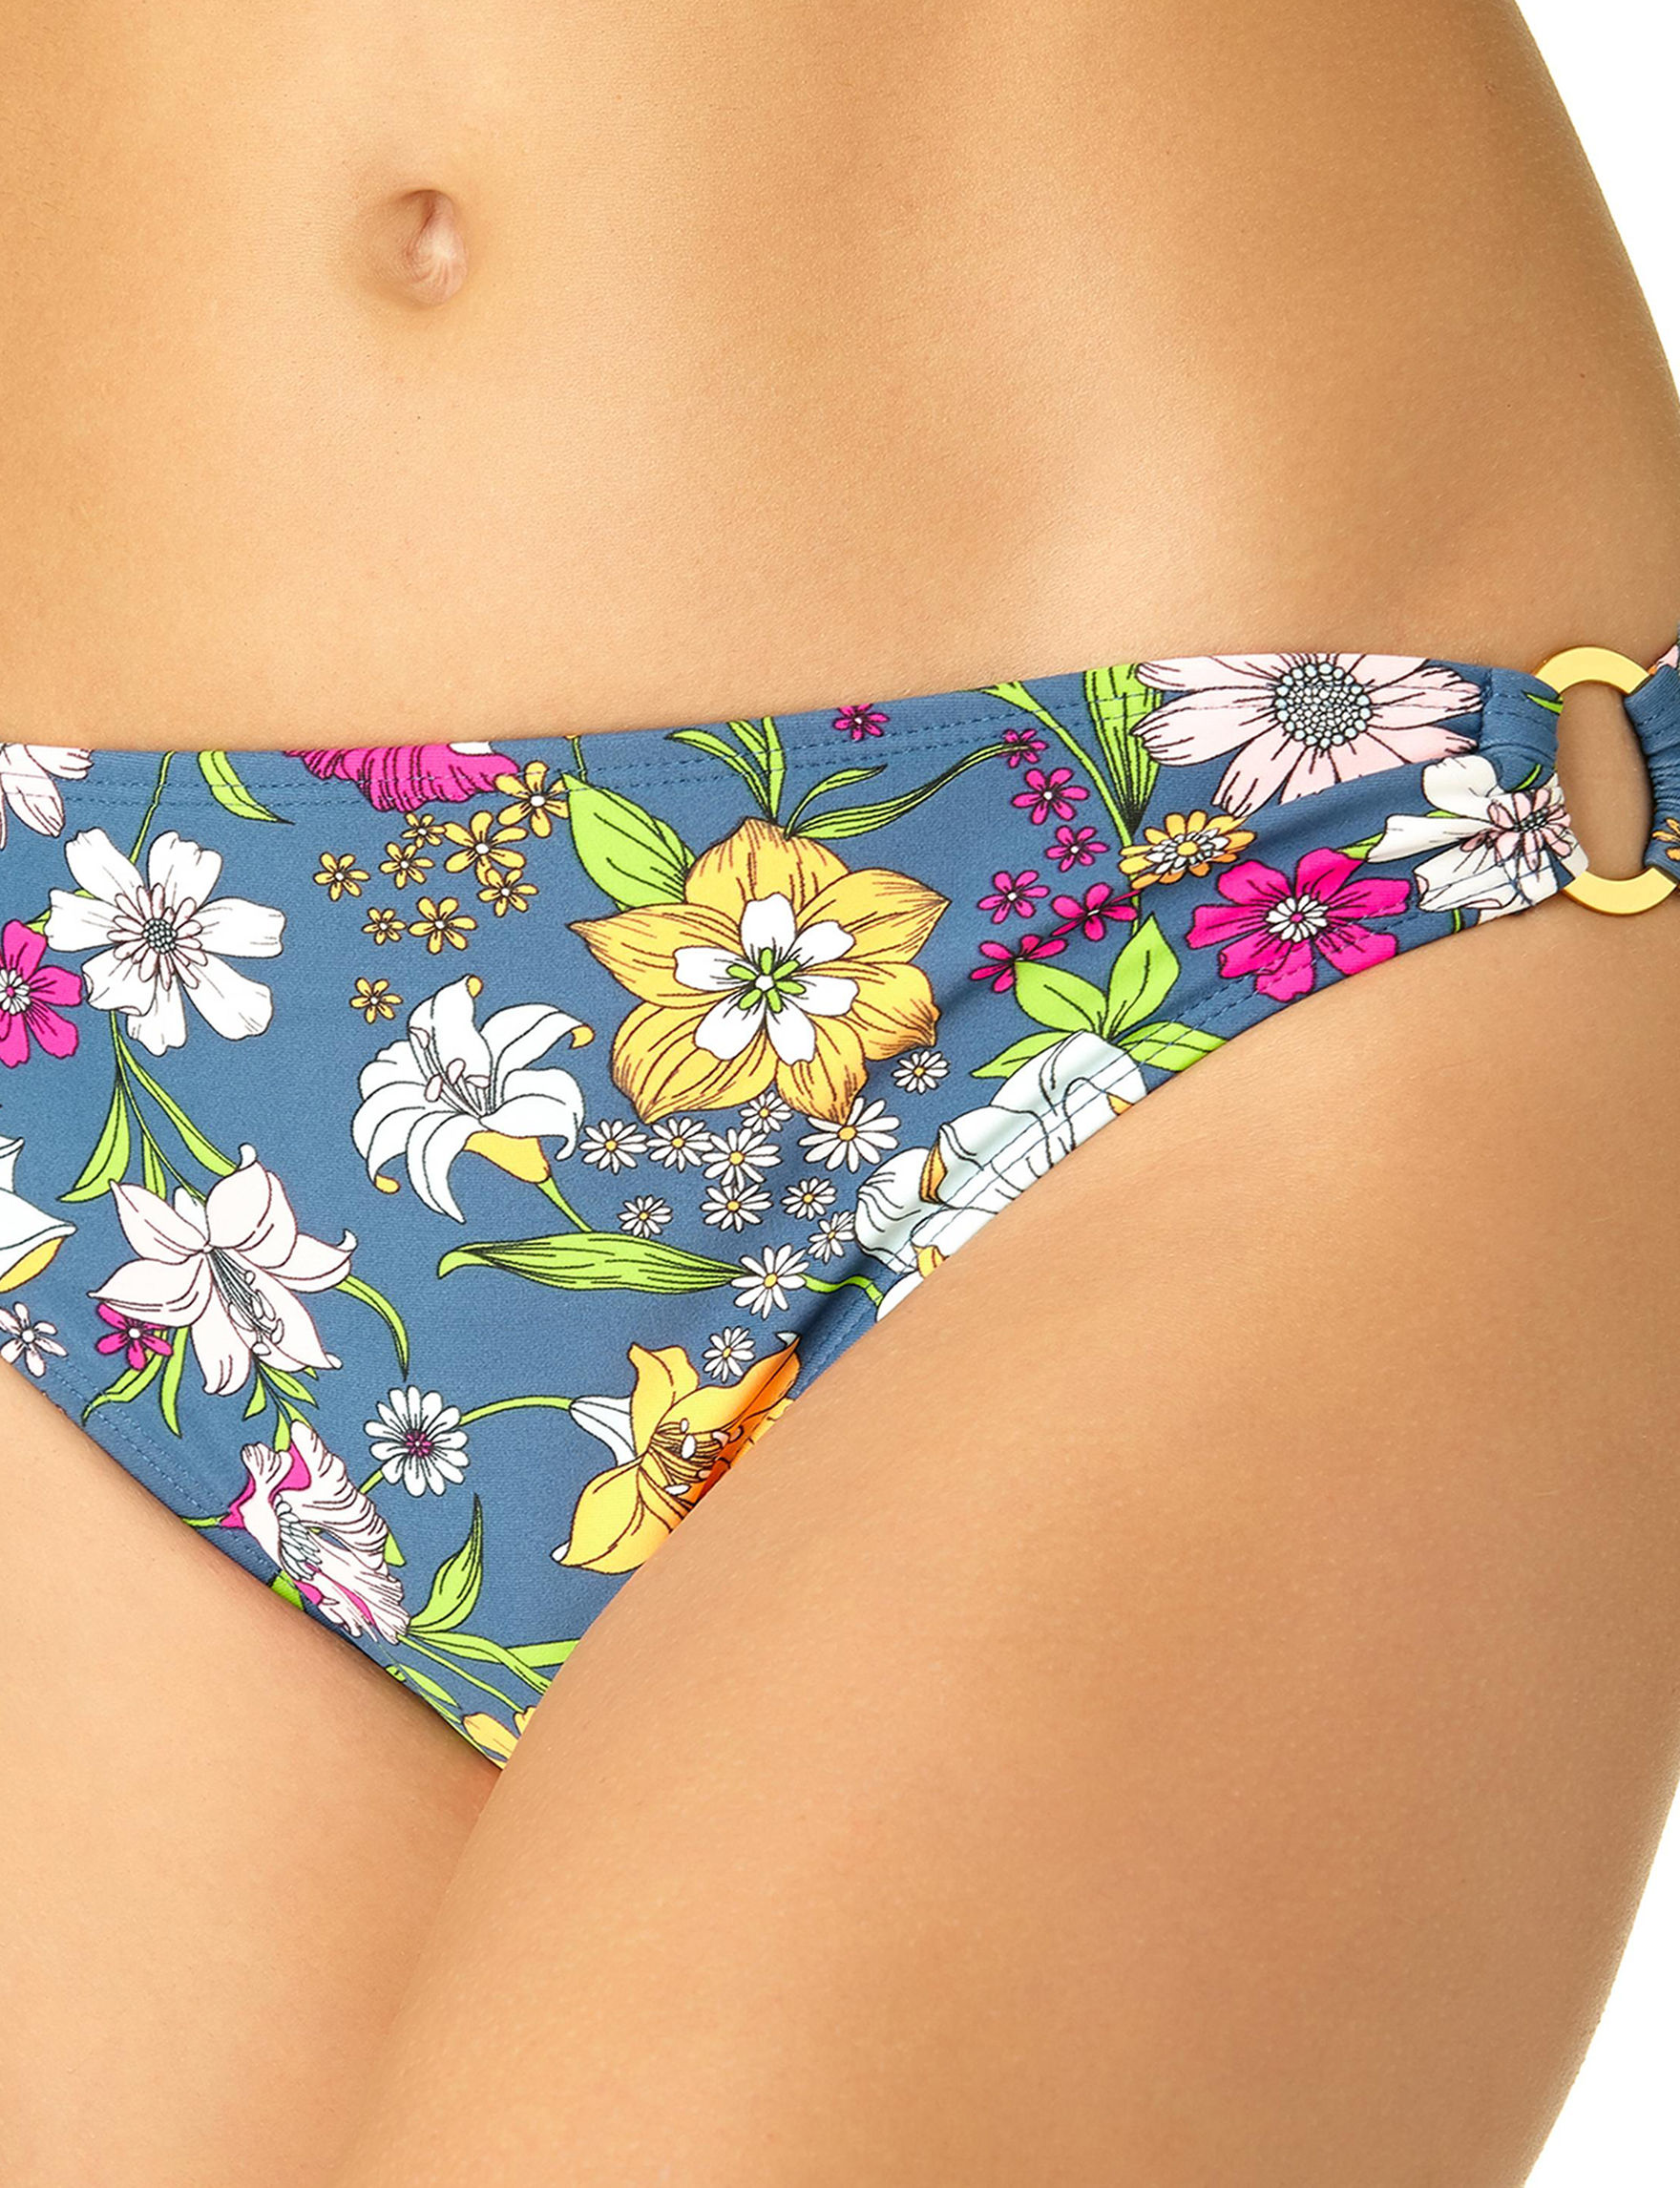 California Sunshine Floral Swimsuit Bottoms Hipster